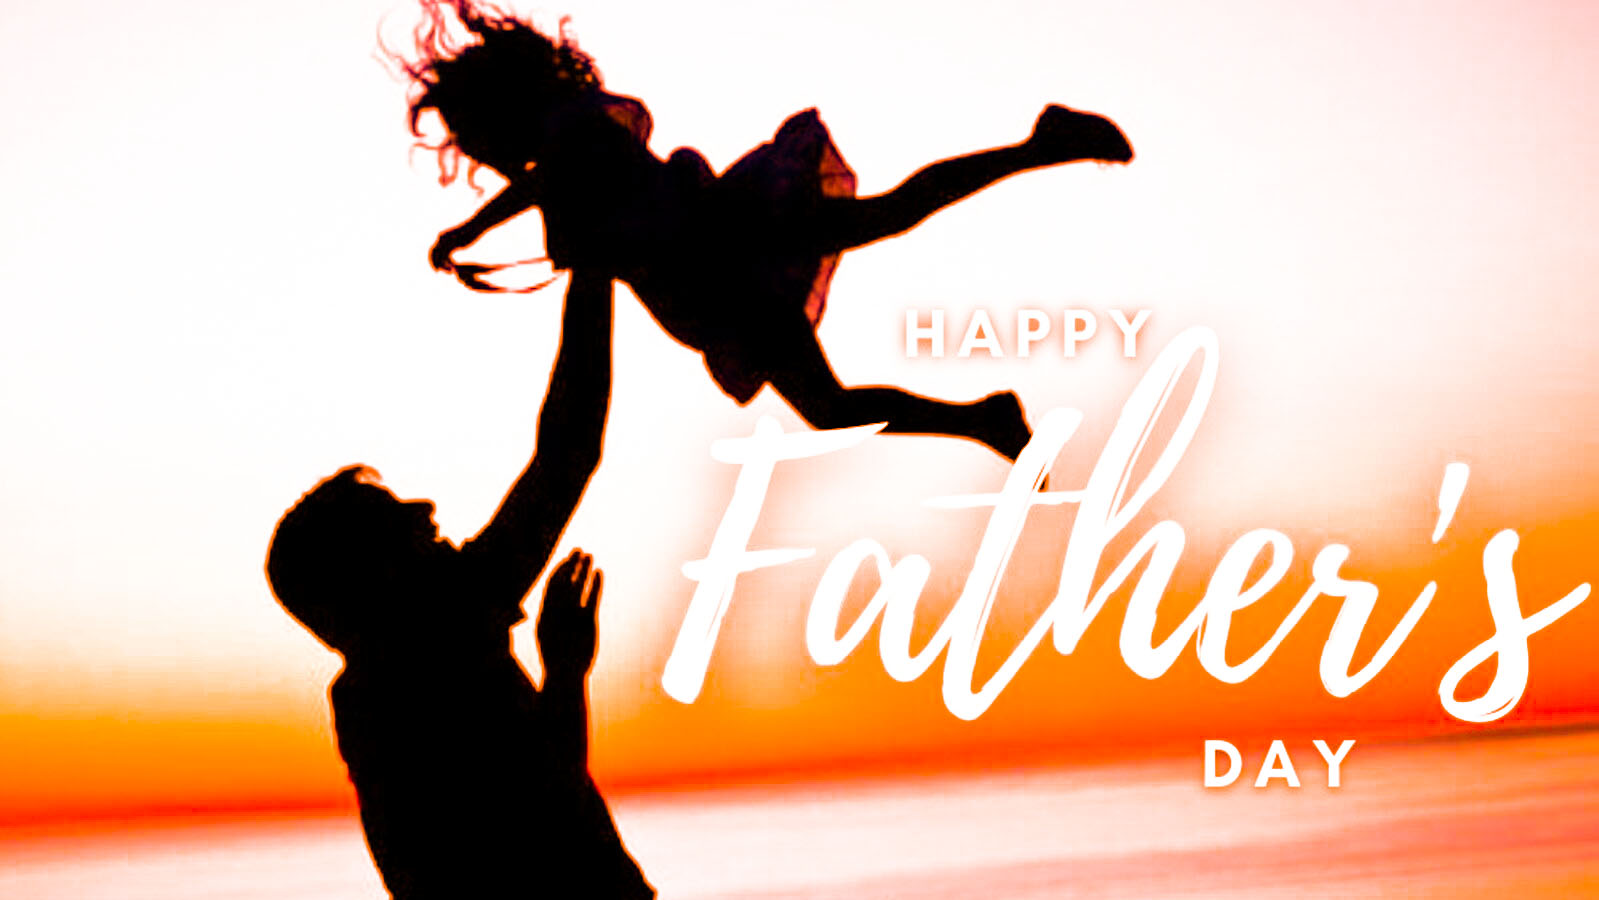 Father's Day Images 2021